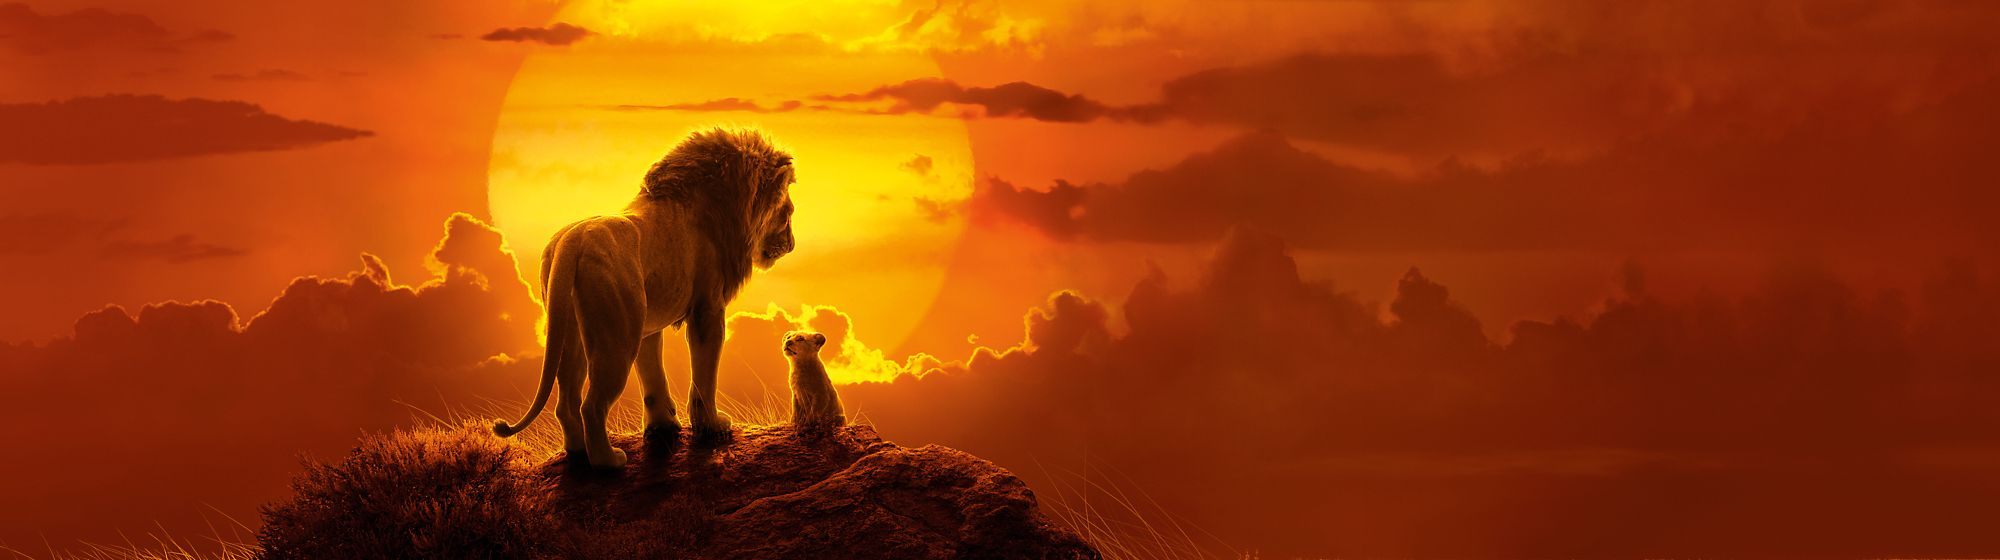 The Lion King Explore our The Lion King range including soft toys, playsets, homeware, collectibles and more